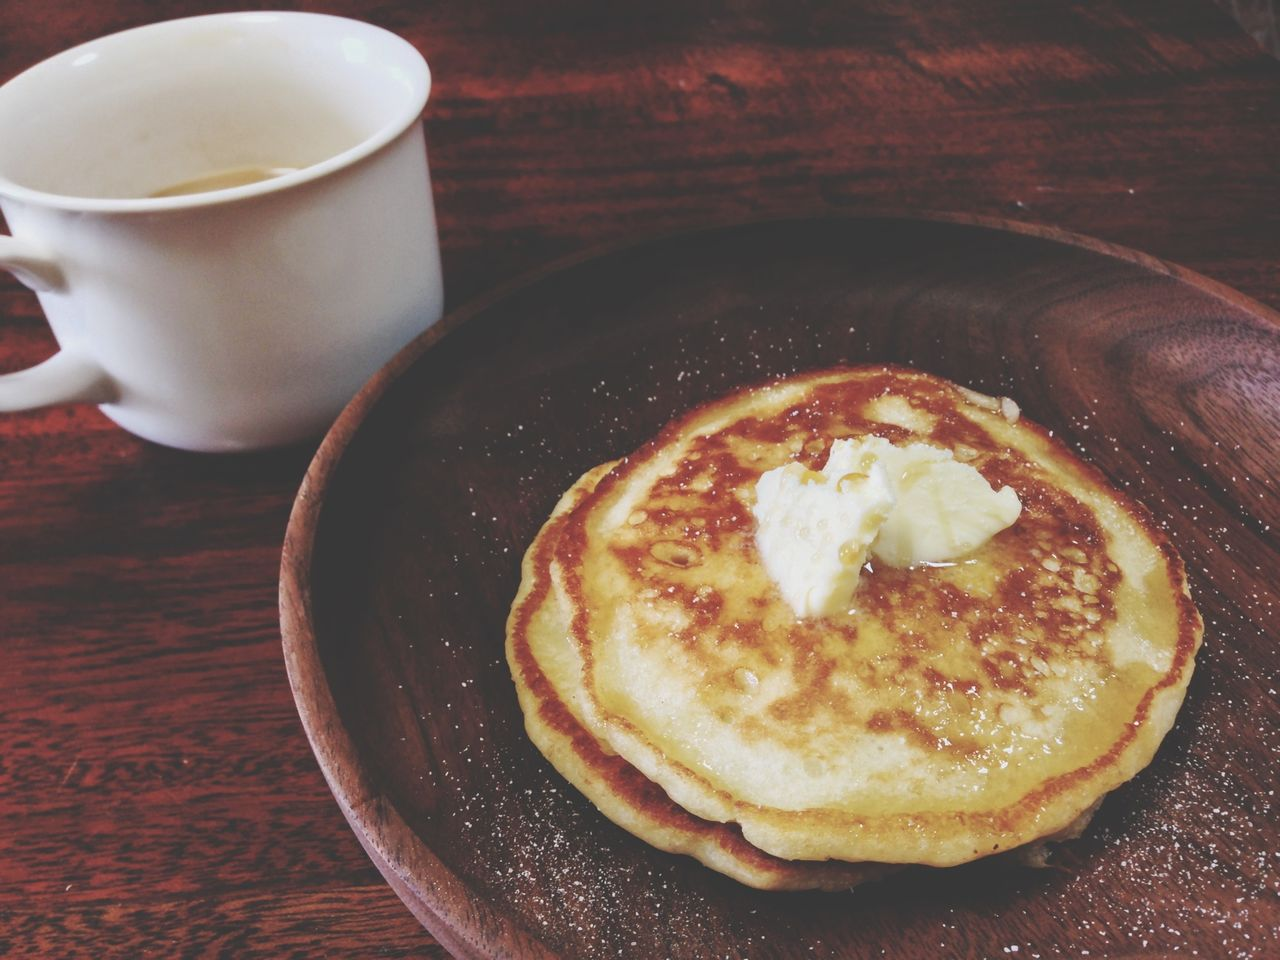 food and drink, food, coffee cup, freshness, indoors, coffee - drink, table, drink, breakfast, plate, refreshment, close-up, no people, indulgence, serving size, sweet food, ready-to-eat, healthy eating, temptation, day